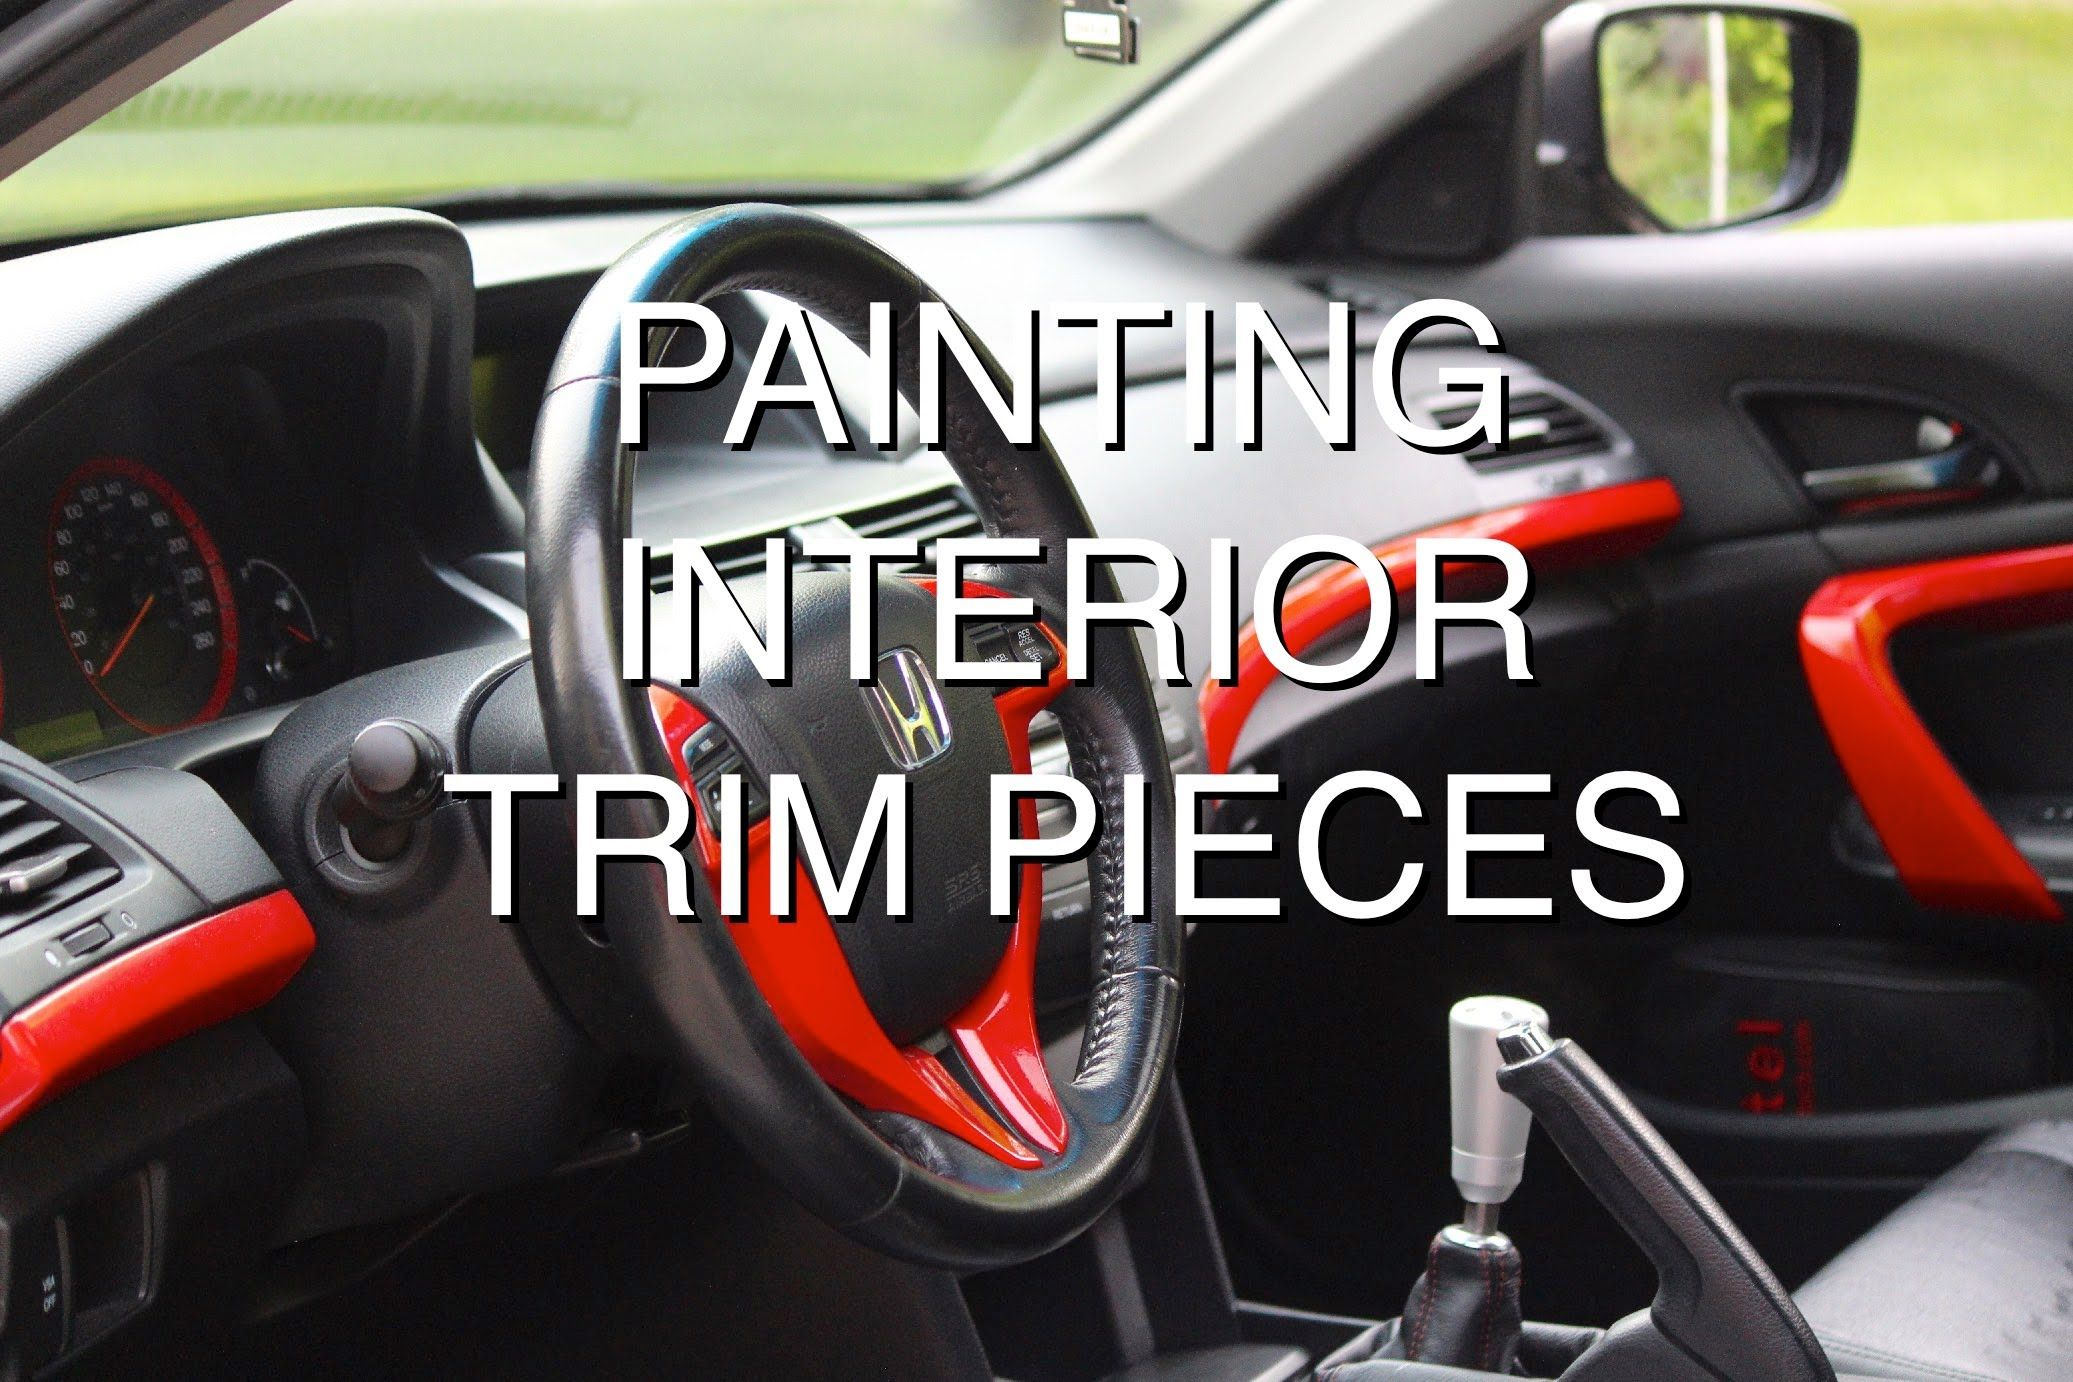 How To Paint Interior Trim Pieces Car Interior Diy Car Interior Paint Diy Car